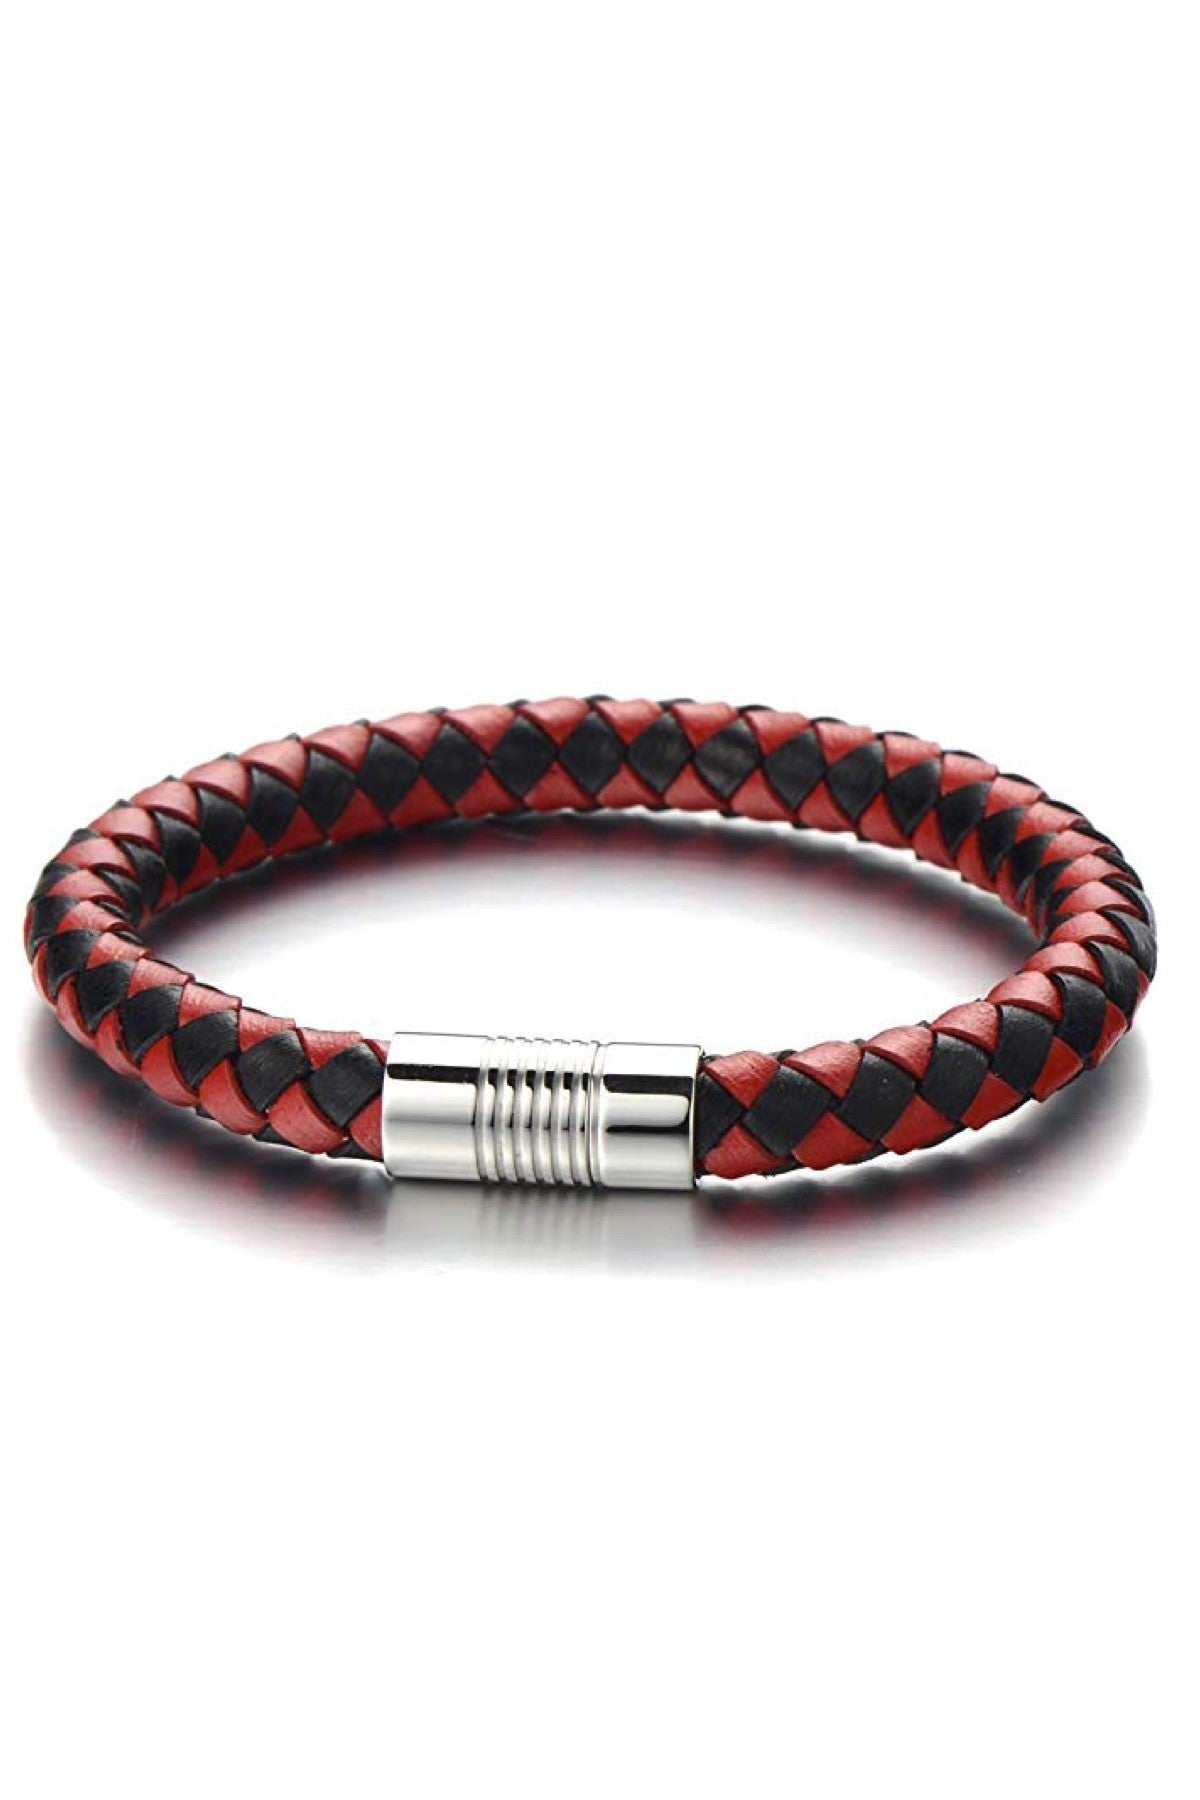 Red & Black Woven Leather Silver Bracelet